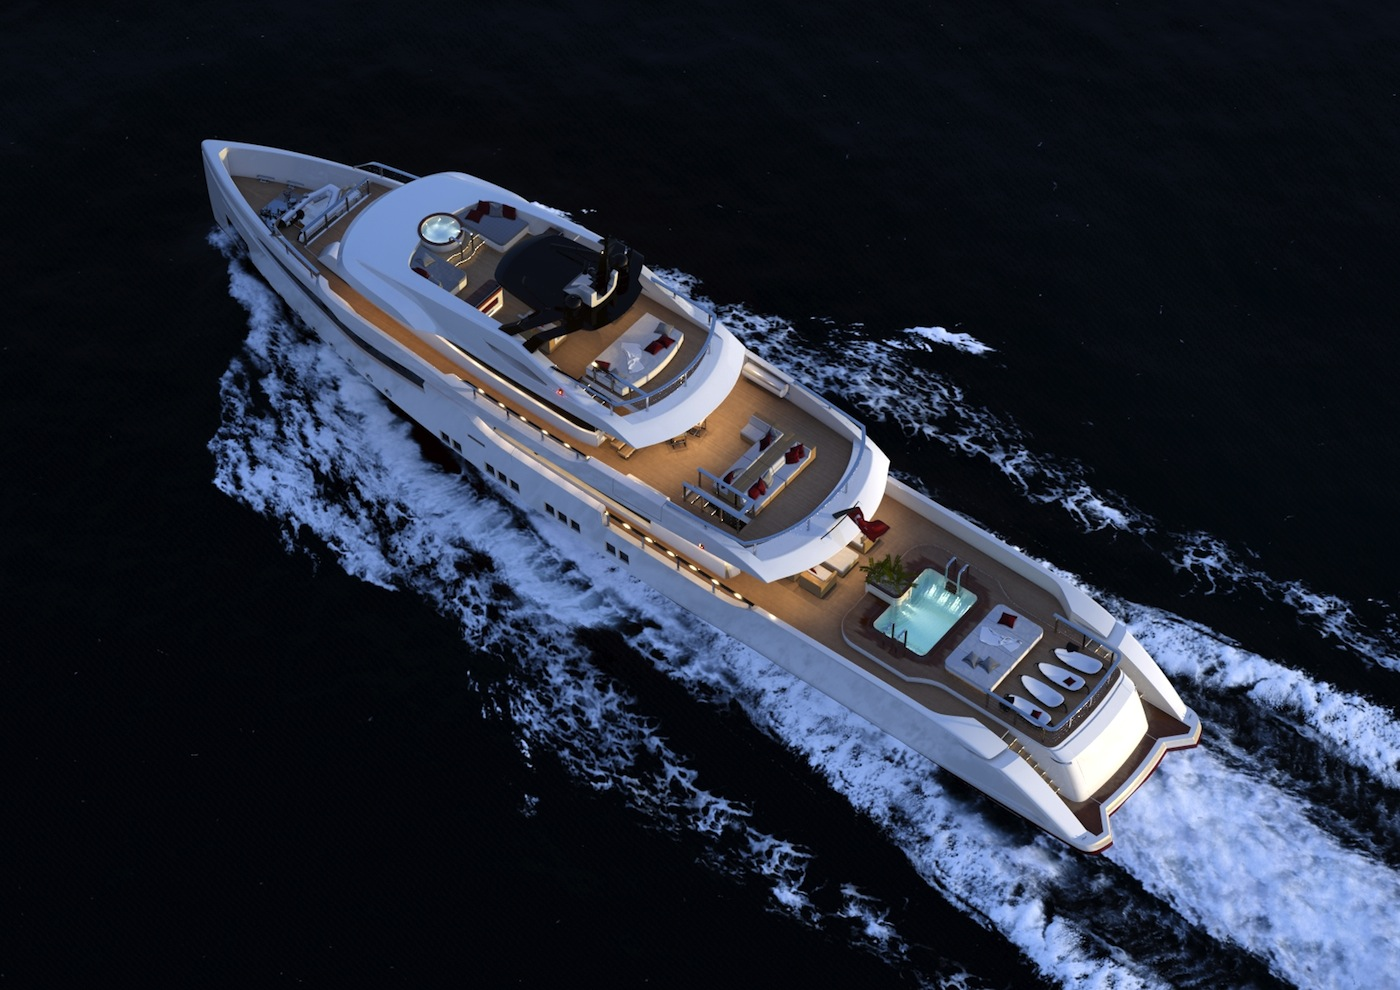 Rmk 5000 leisure yacht concept view from above new superyacht